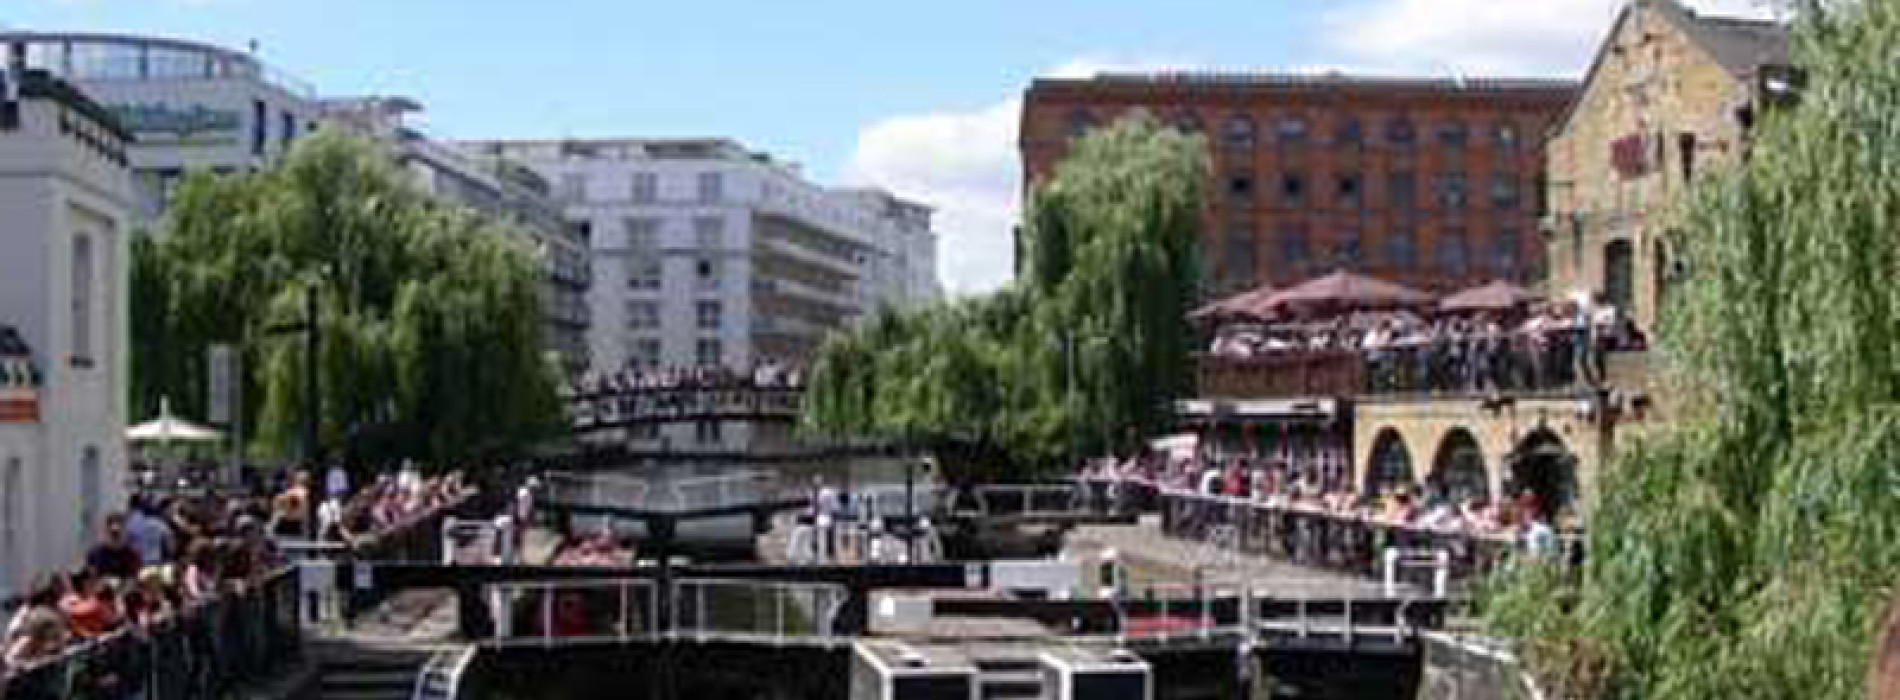 How accessible is Camden?